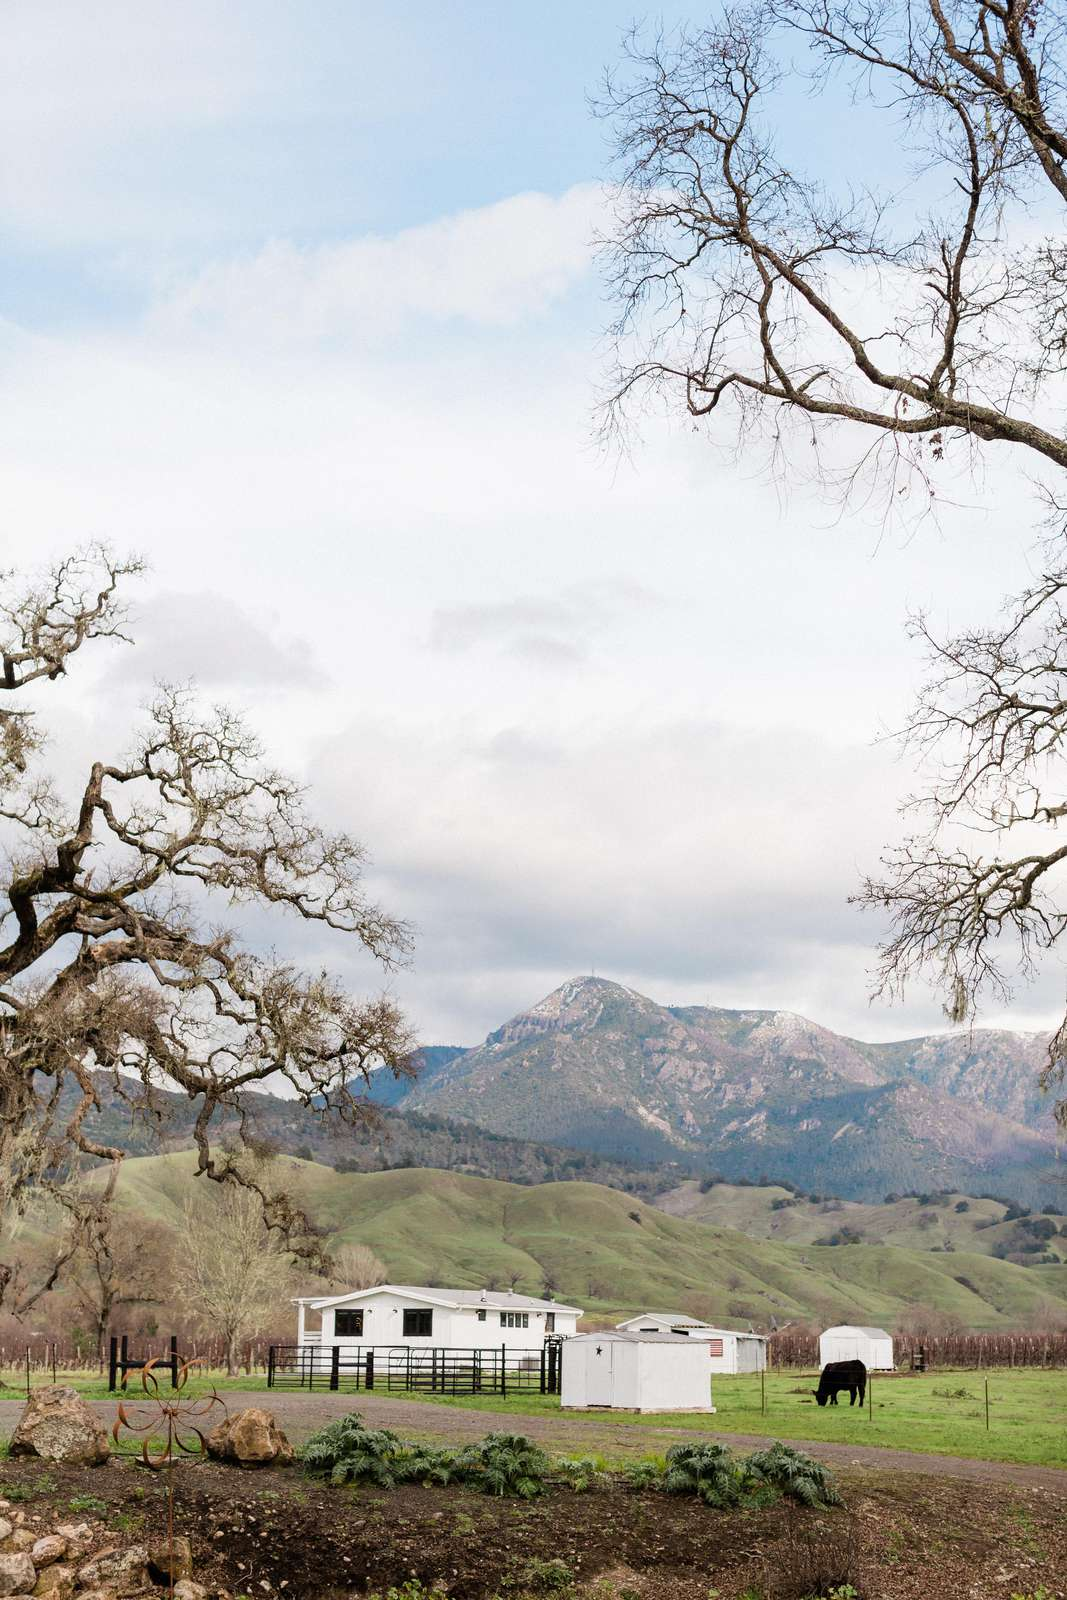 Mt. St. Helena in the background